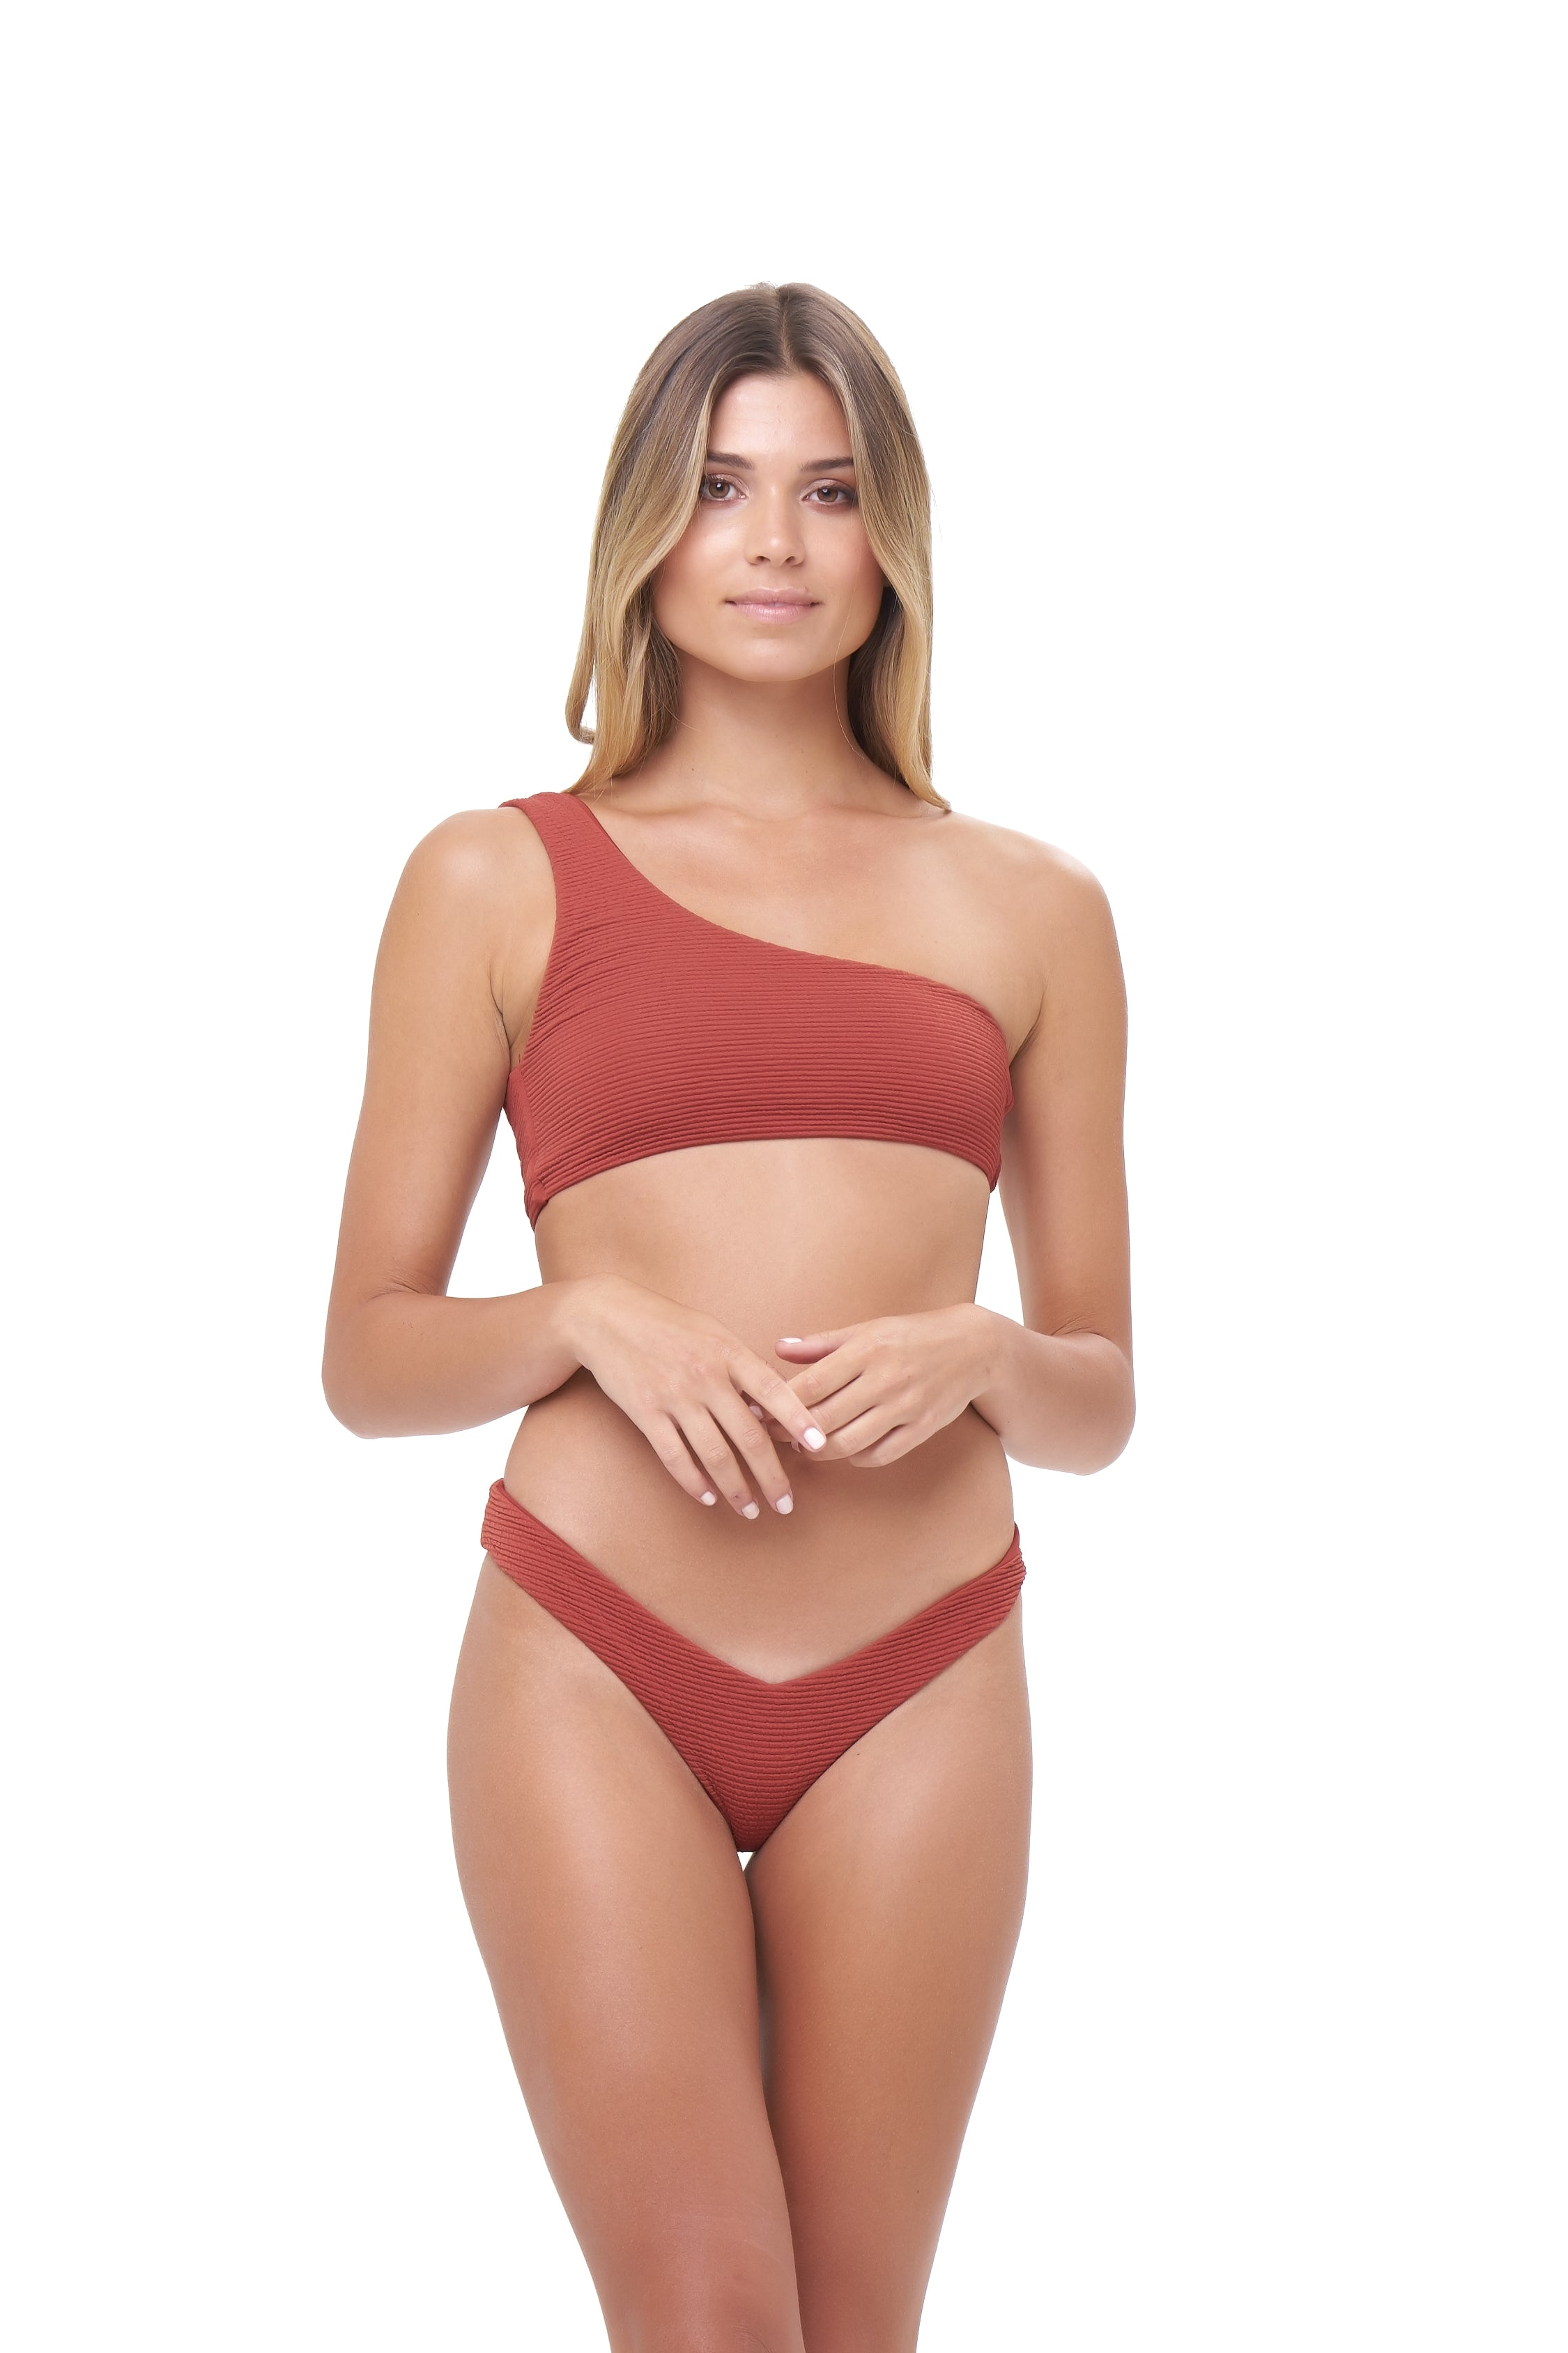 Storm Swimwear - Cinque Terre - One shoulder bikini top in Storm Le Nuage Rouille